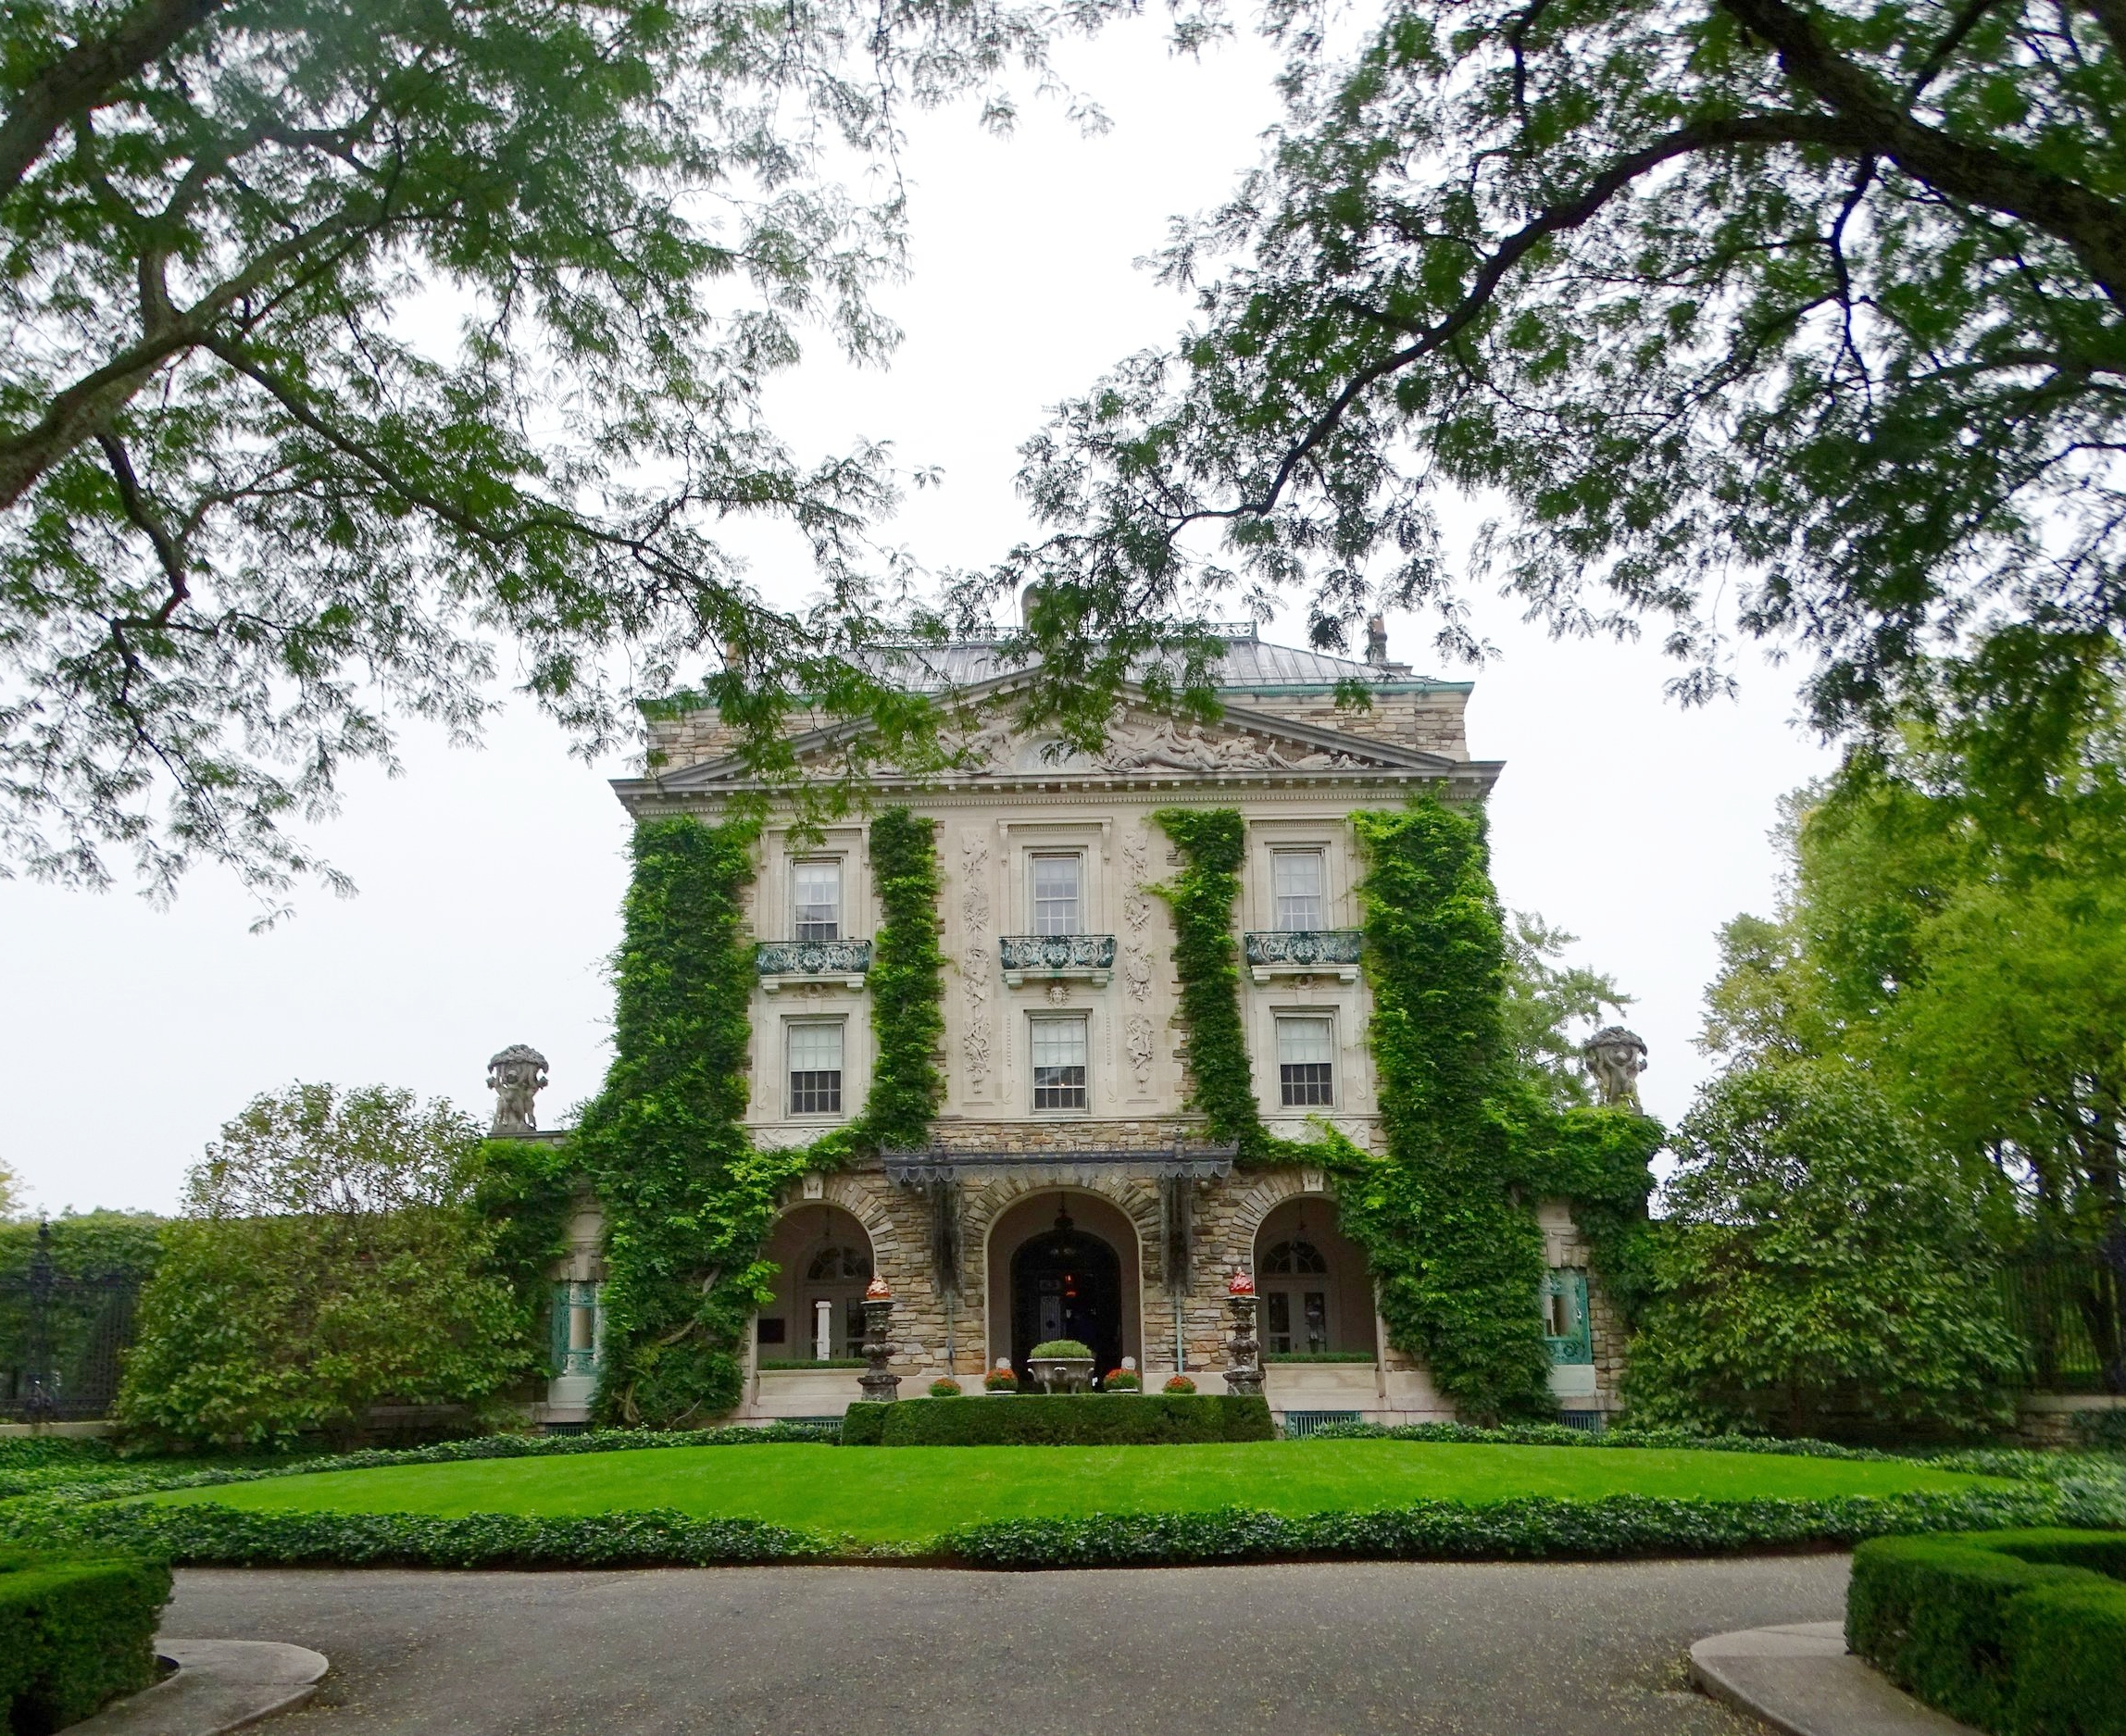 The front entrance to Kykuit.